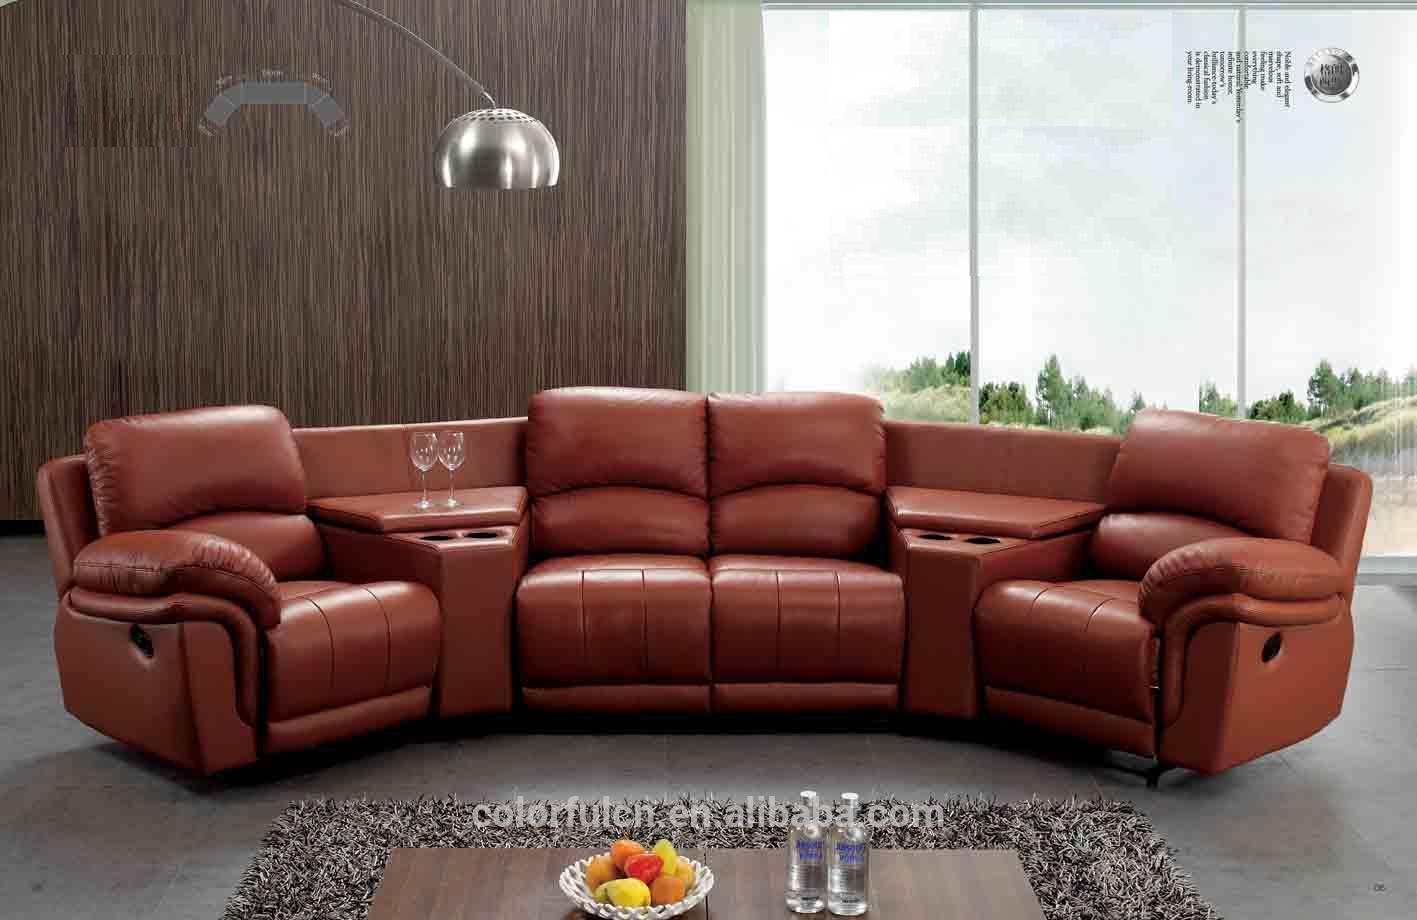 Semi Circle Leather Sofa, Semi Circle Leather Sofa Suppliers And Regarding Circle Sofas (Image 15 of 20)